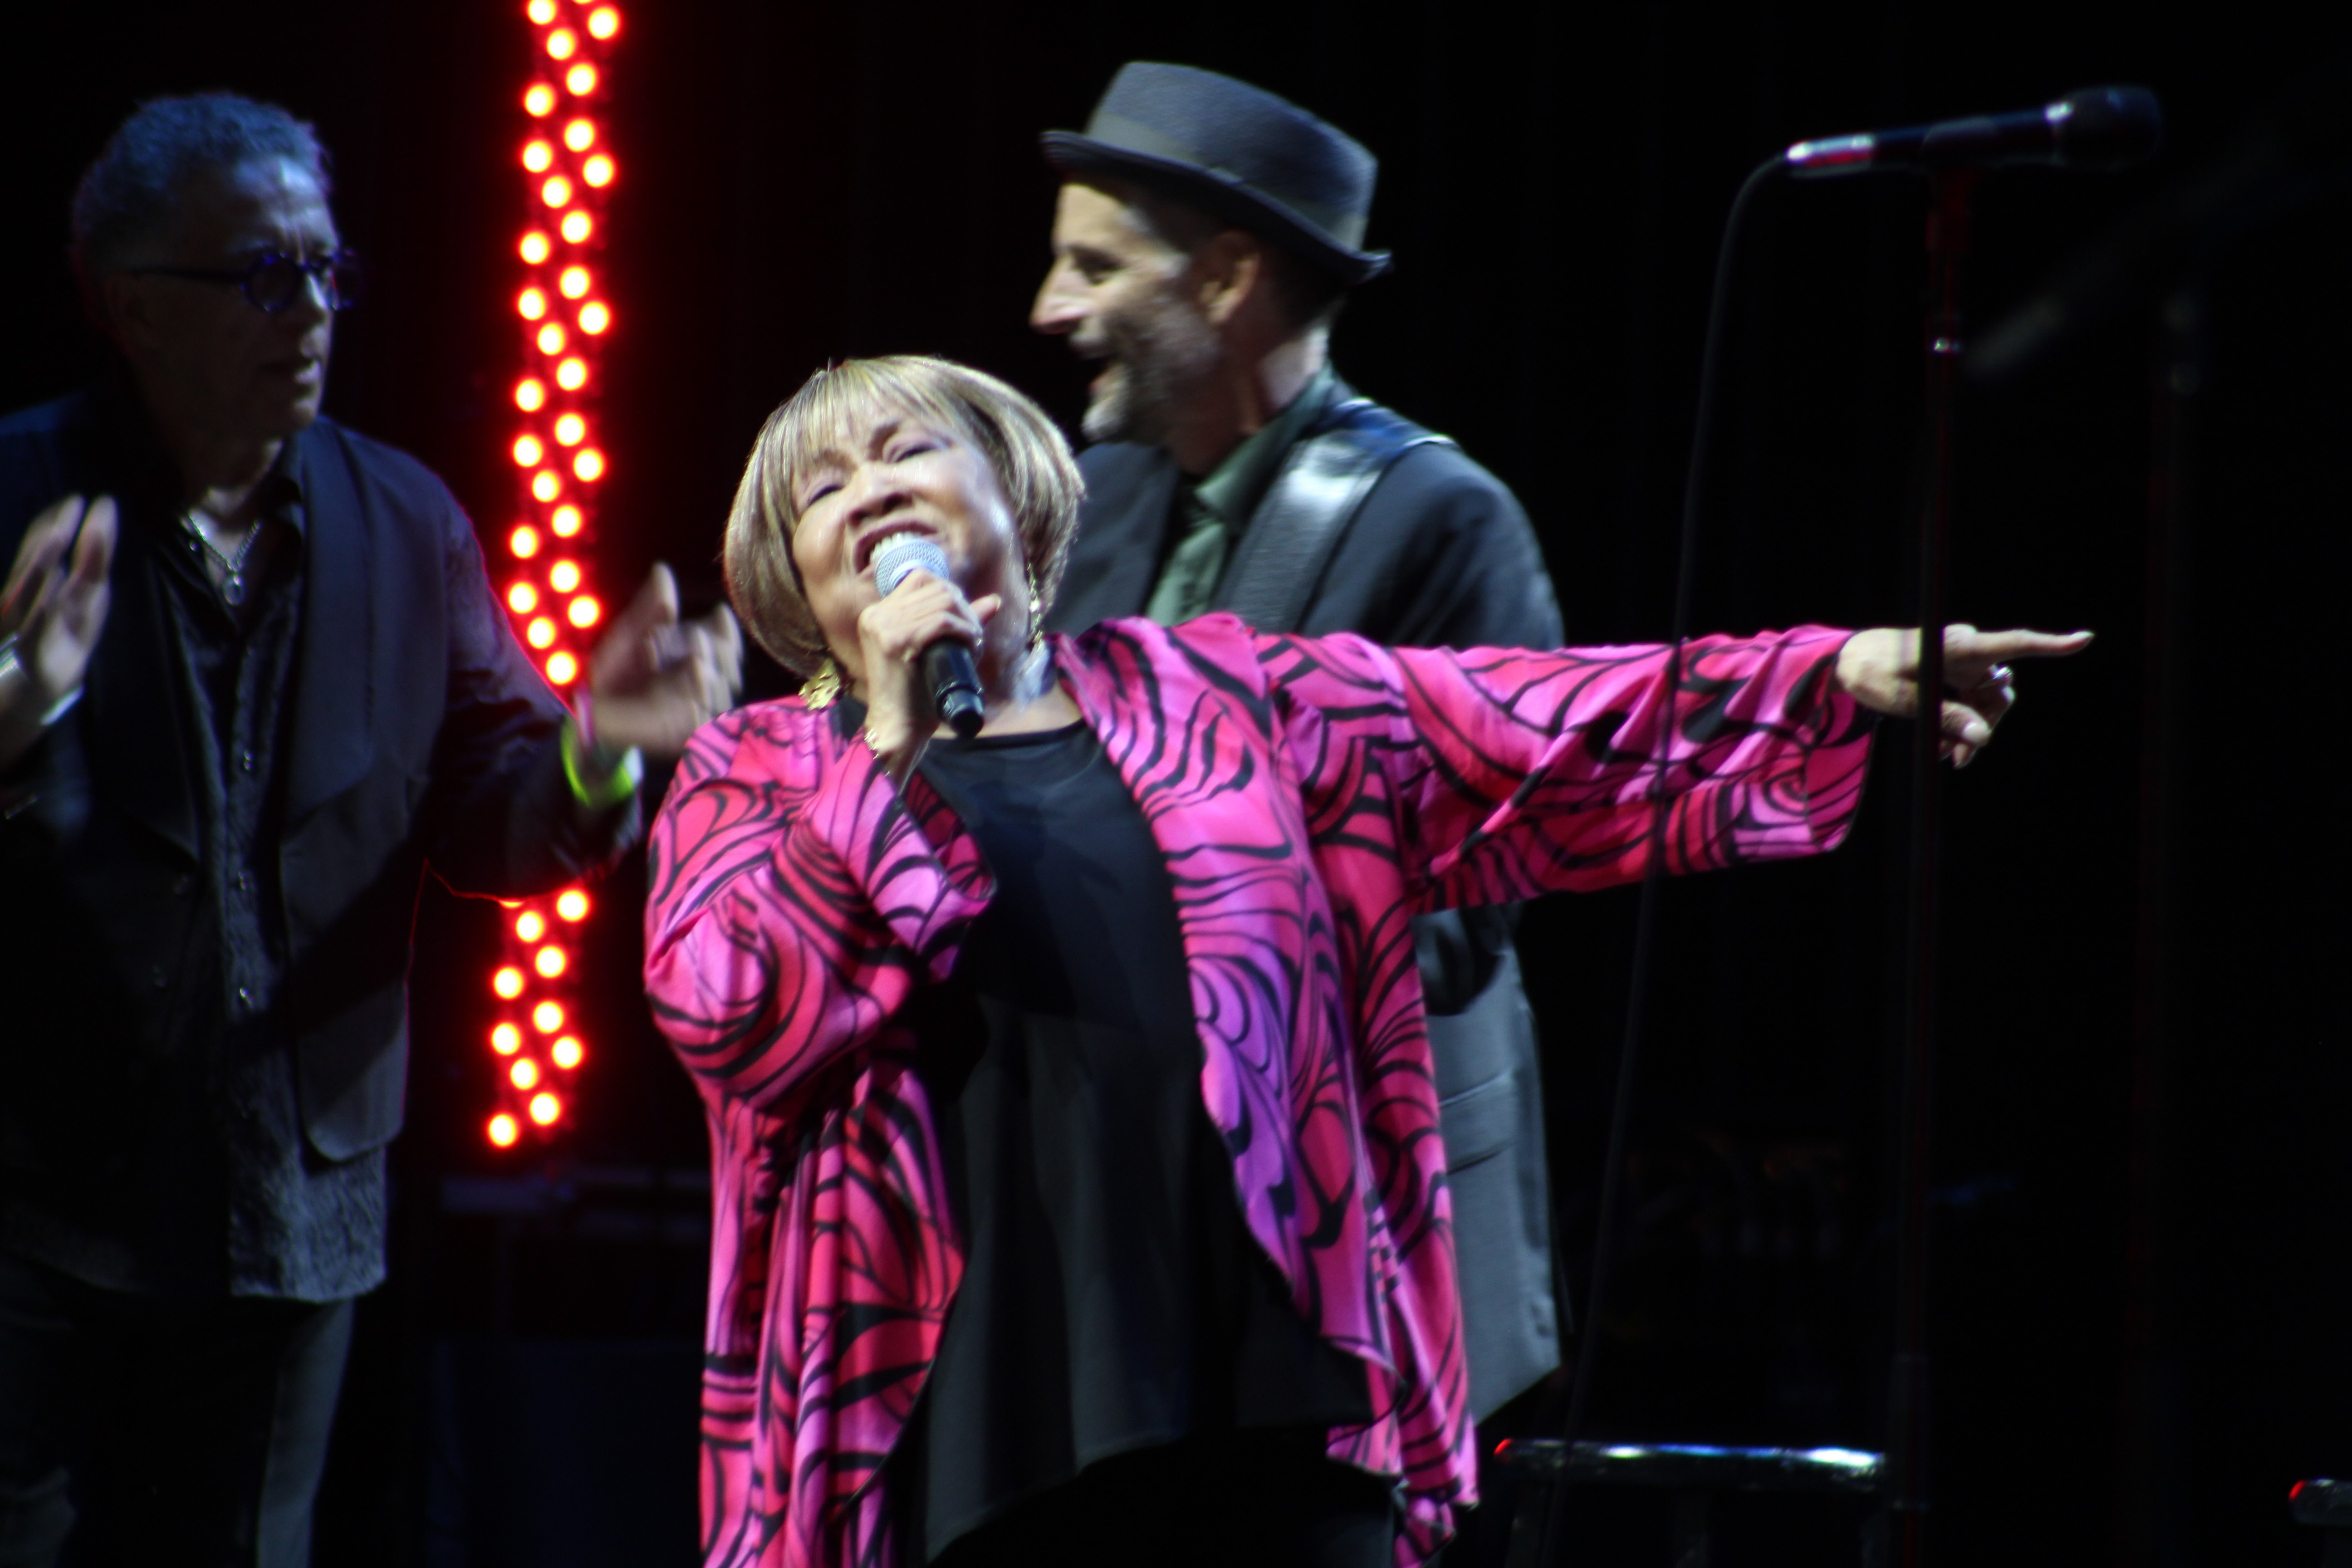 "<div class=""meta image-caption""><div class=""origin-logo origin-image wabc""><span>WABC</span></div><span class=""caption-text"">Mavis Staples lifted the spirits of soggy music lovers Sunday on the Amphitheater Main Stage. (Calvin B. De Mond)</span></div>"